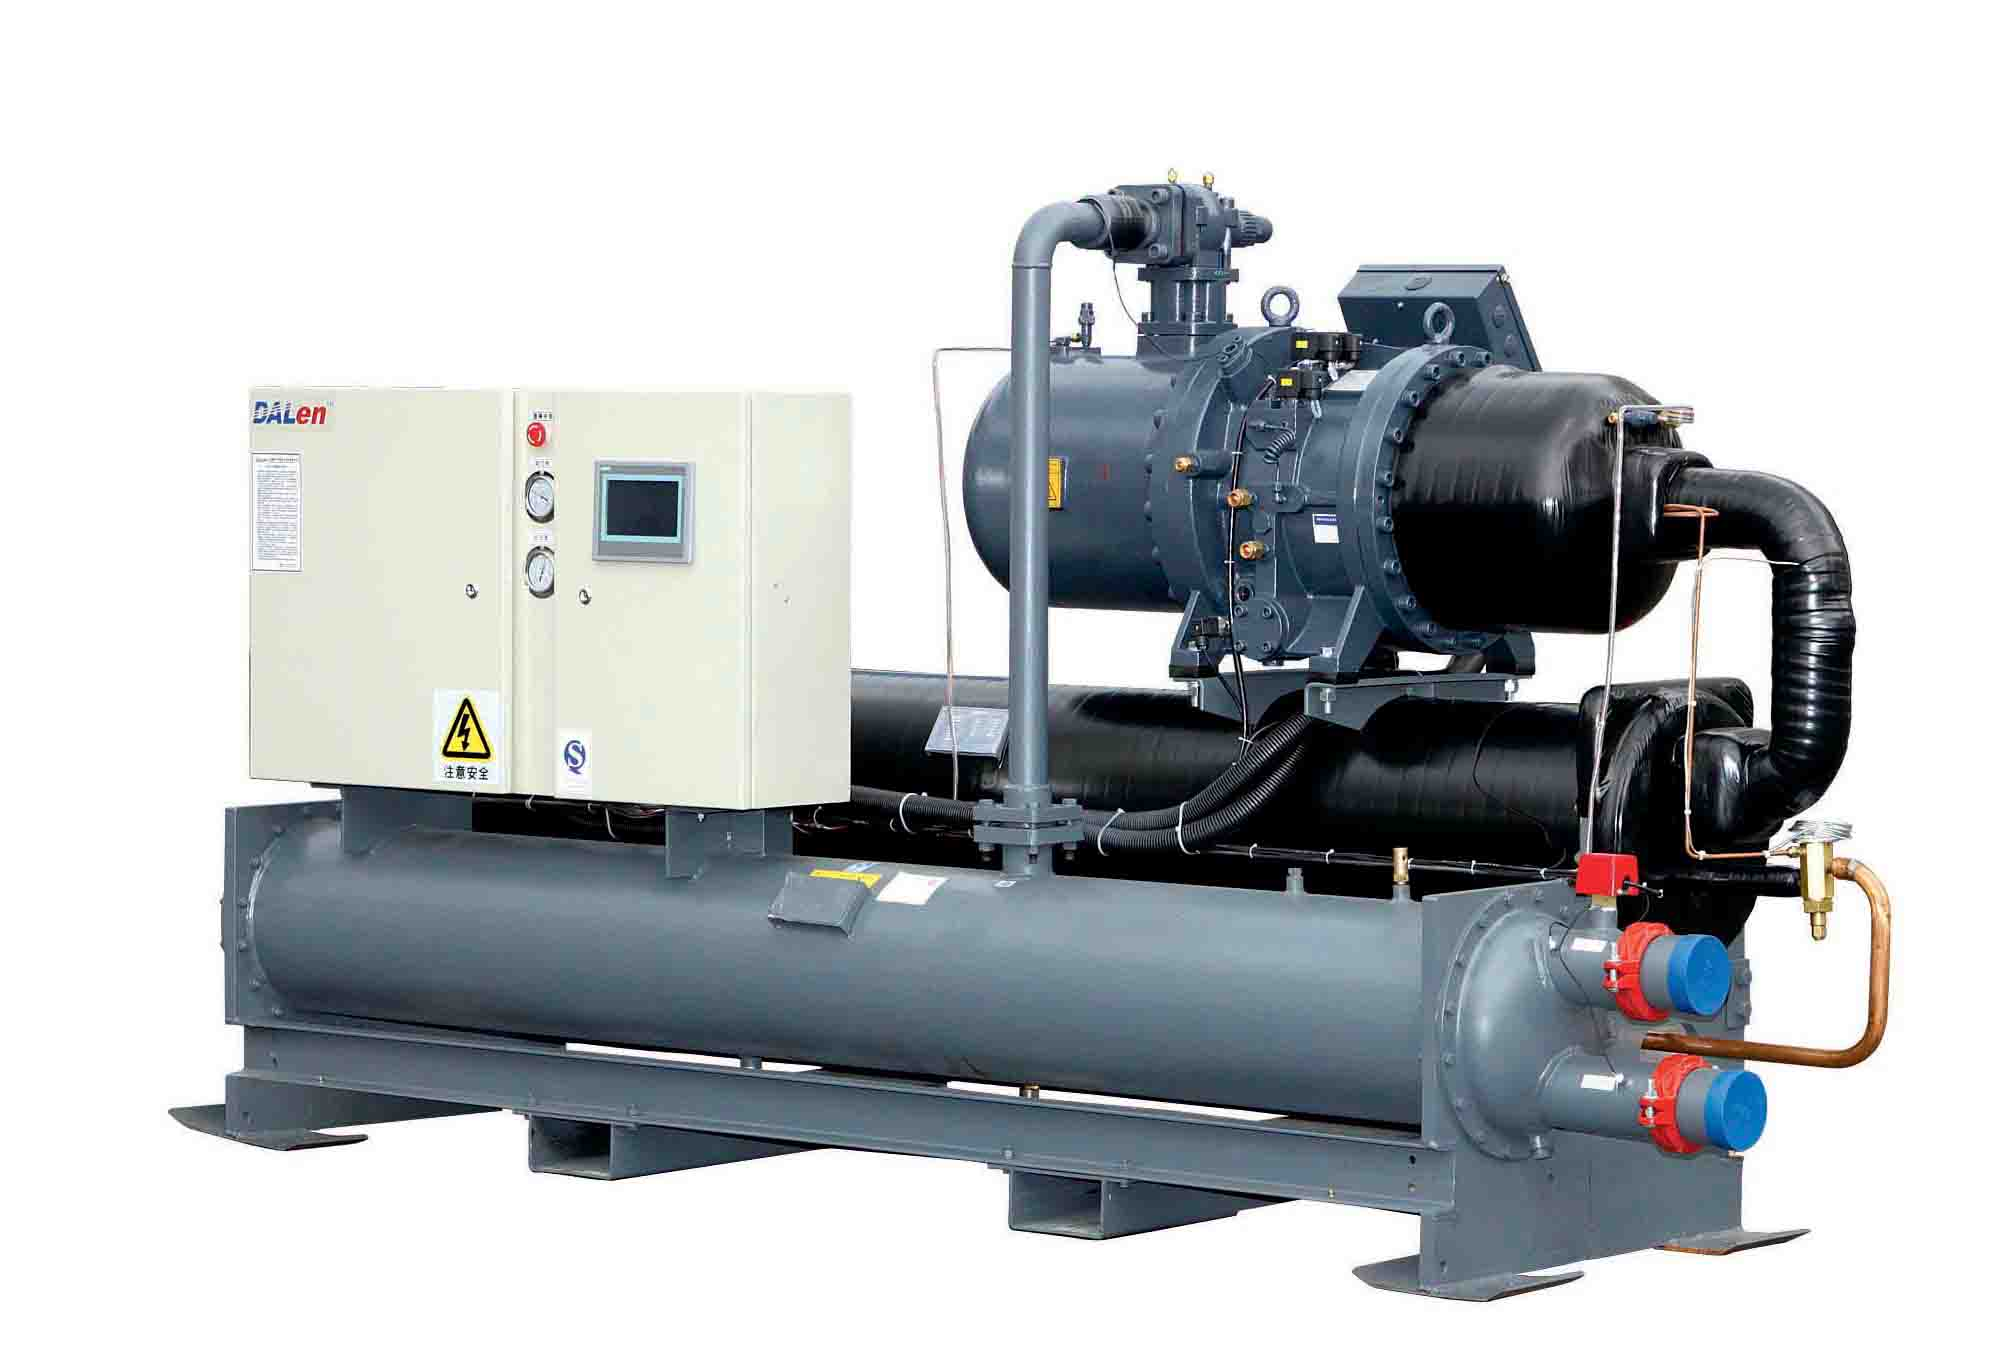 SCREW CHILLER COMPRESSOR Chiller Systems #1474B7